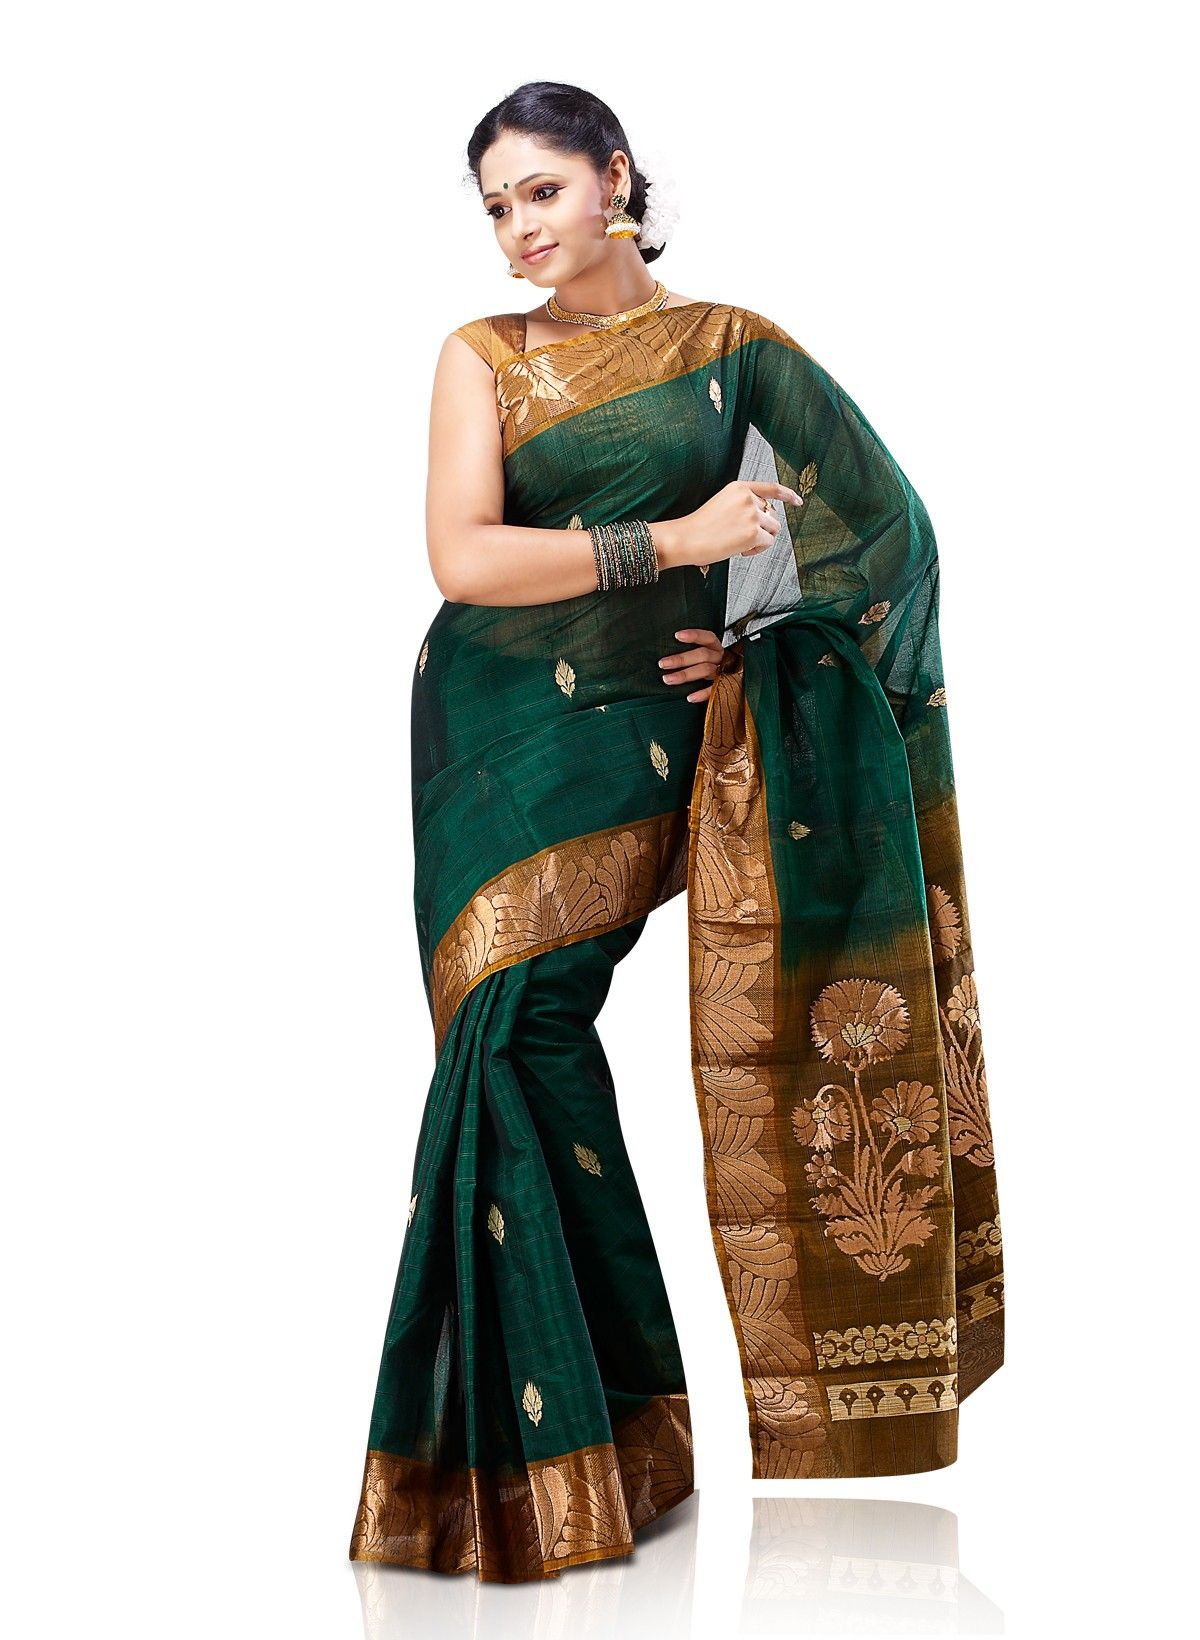 Bengal cotton sarees wholesale in bangalore dating